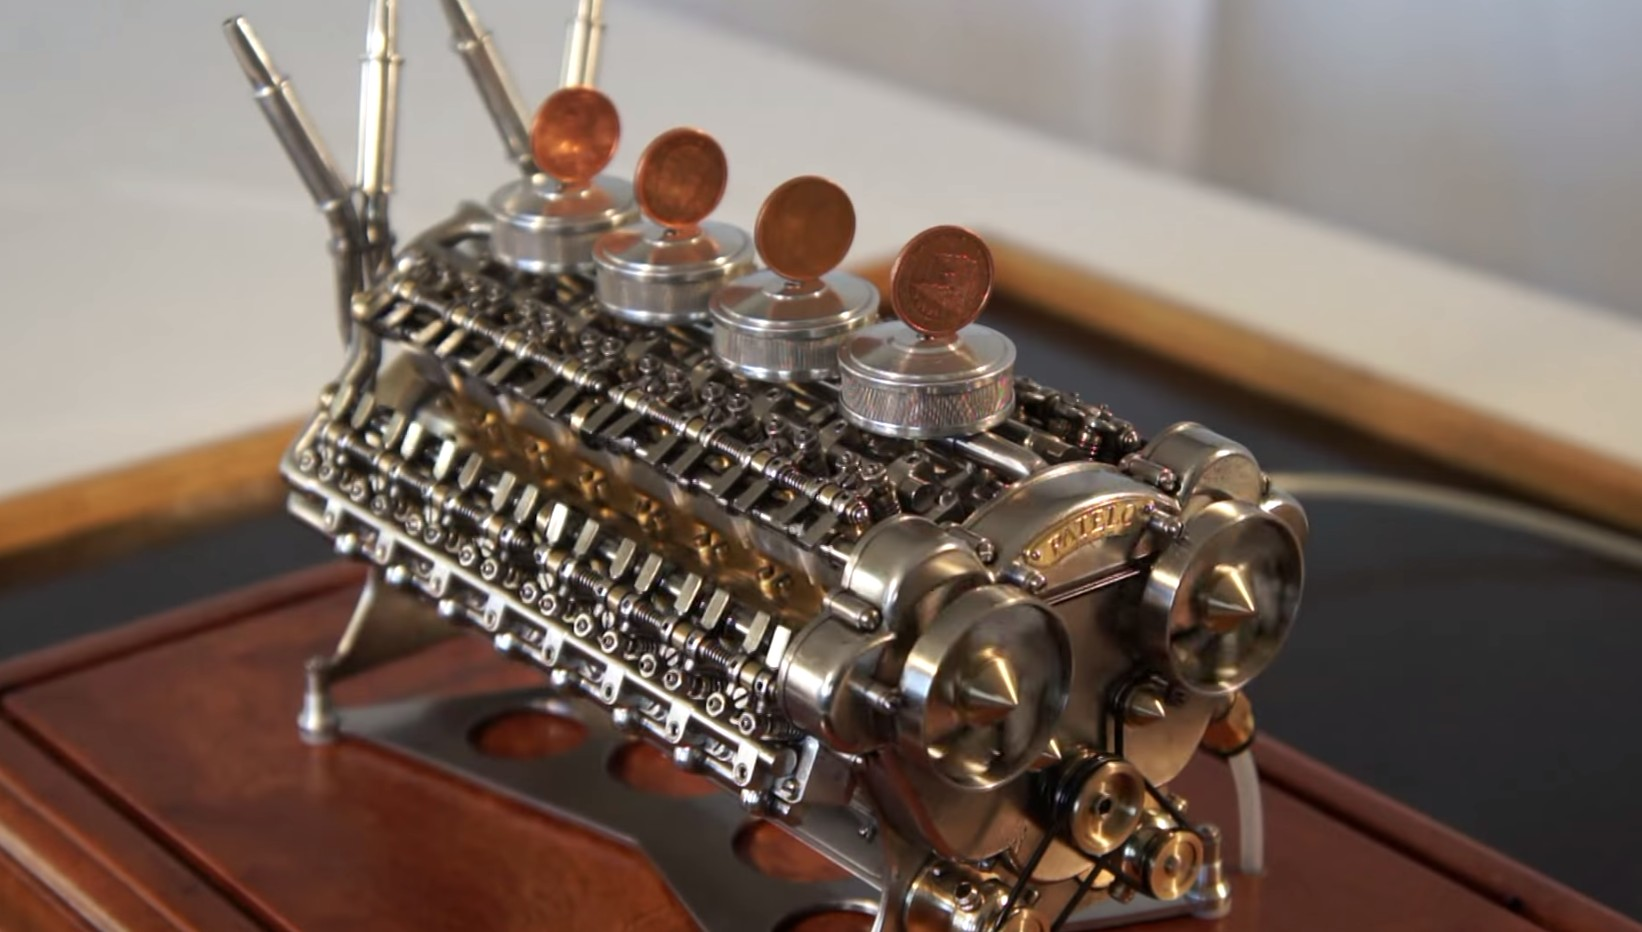 Miniature W-32 Engine Is Mind Blowing: Video